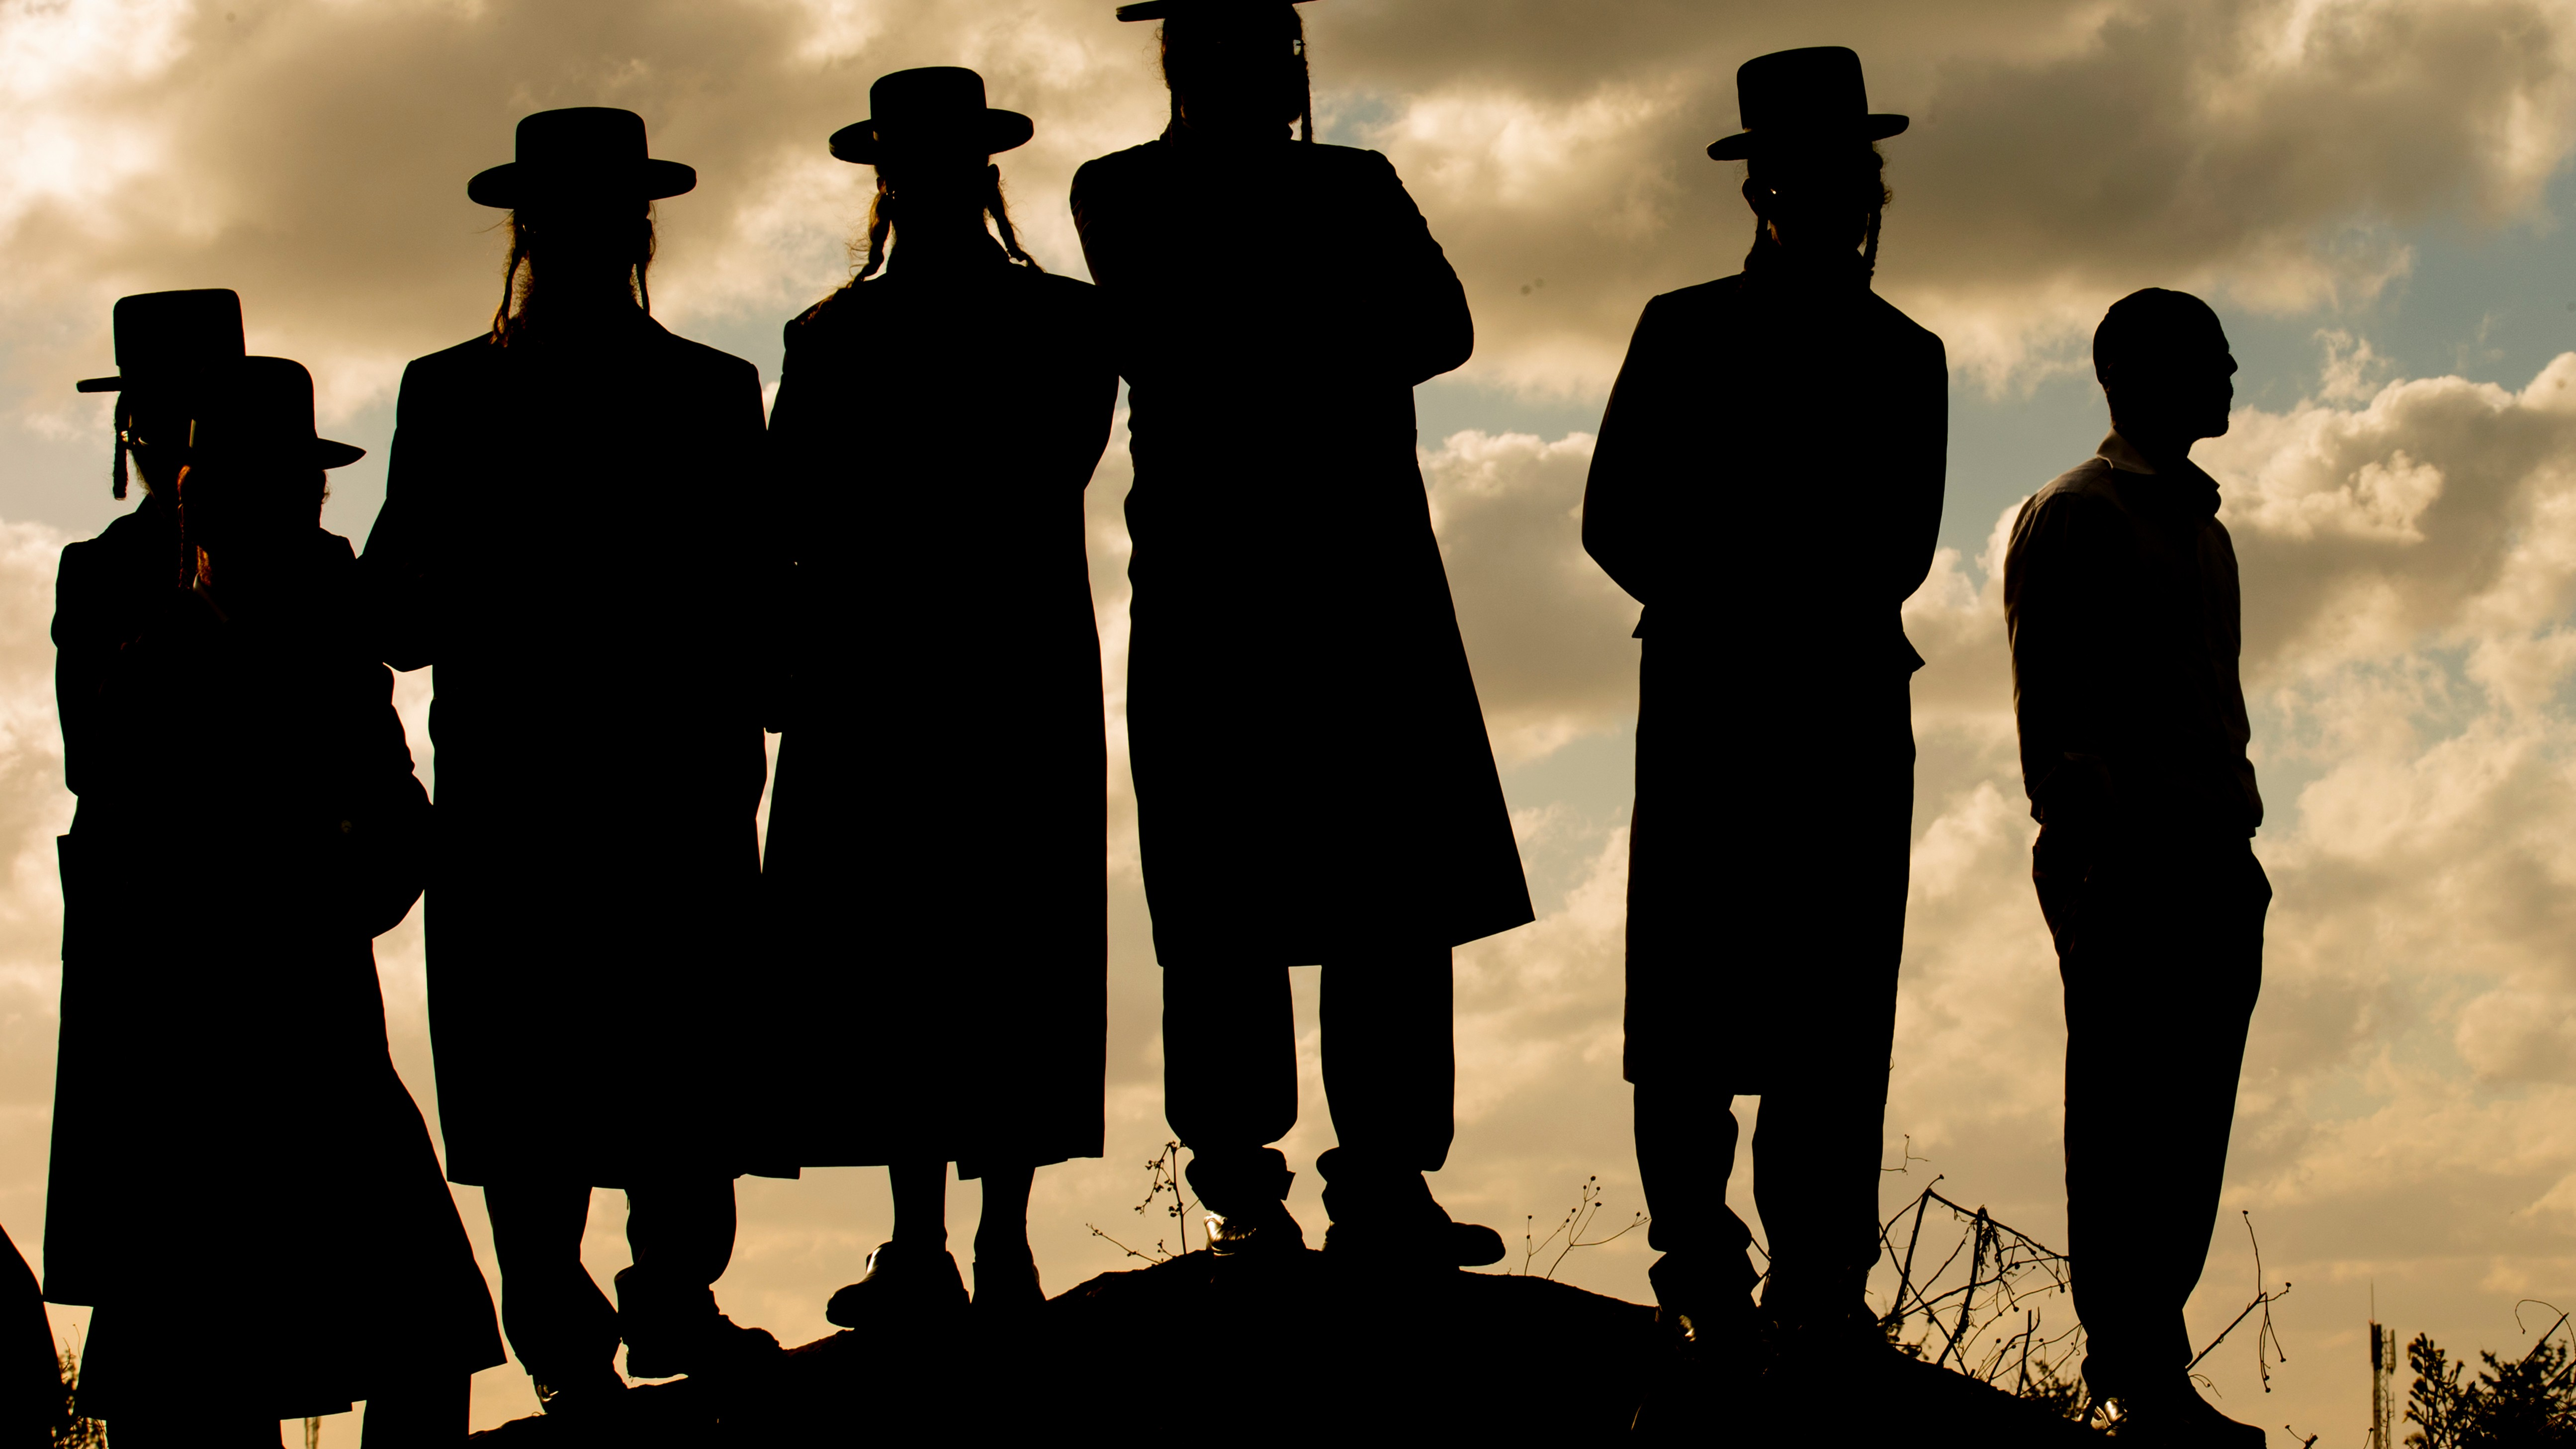 Ultra-Orthodox Jews in Israel Are Starting Tech Companies